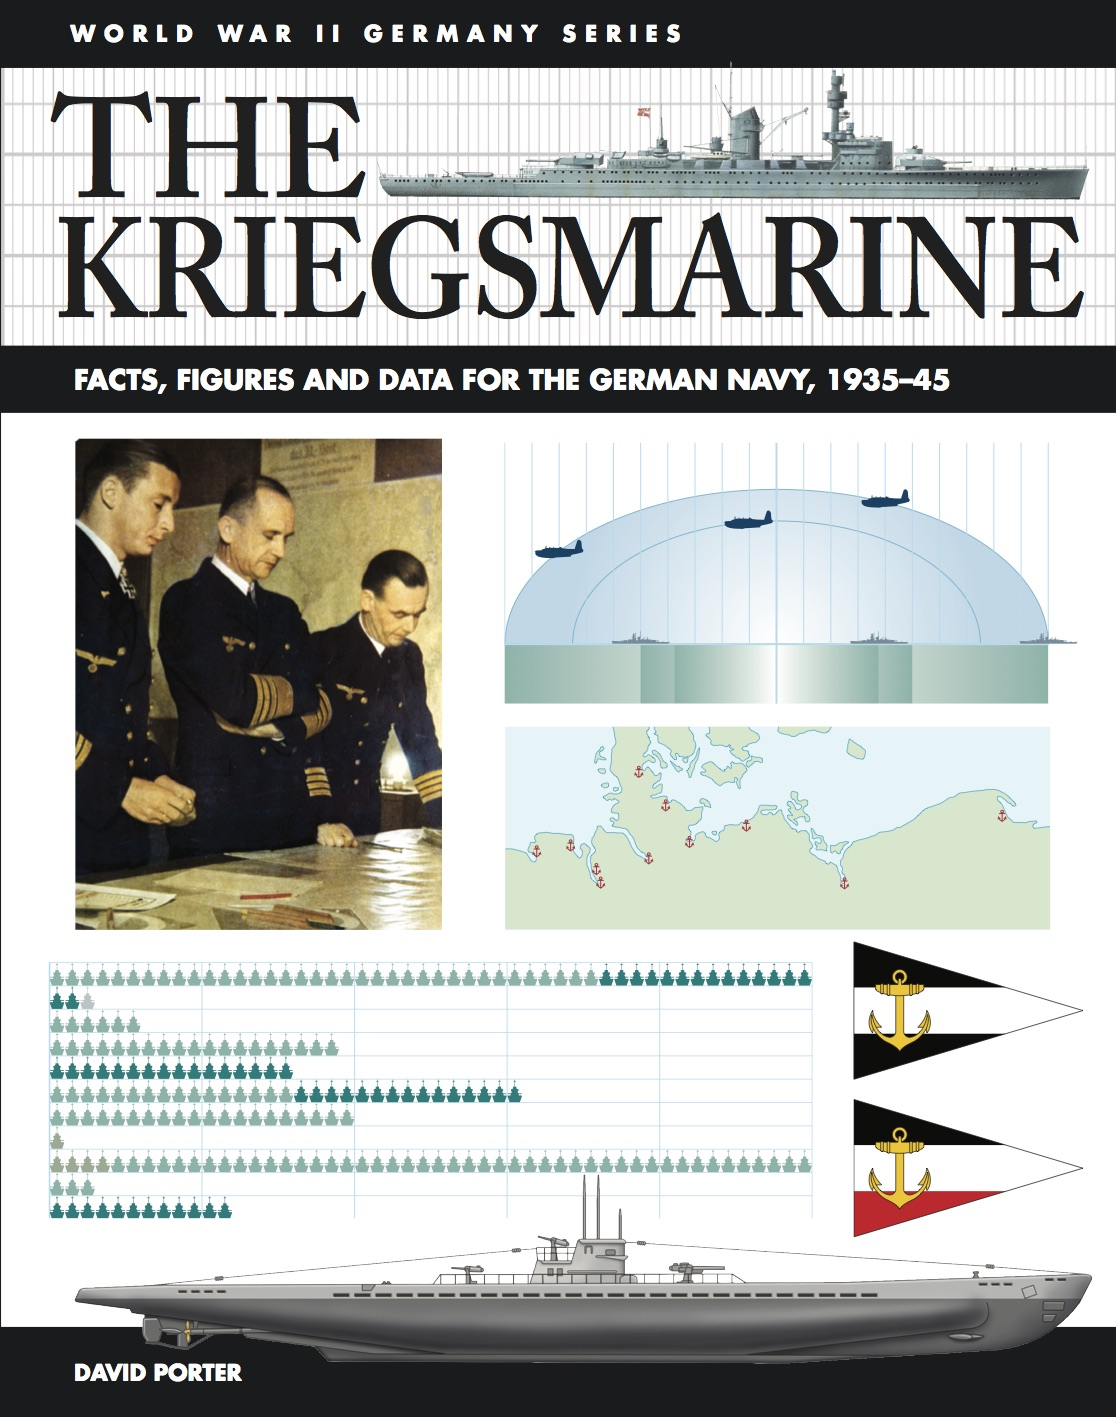 WWII Germany: The Kriegsmarine